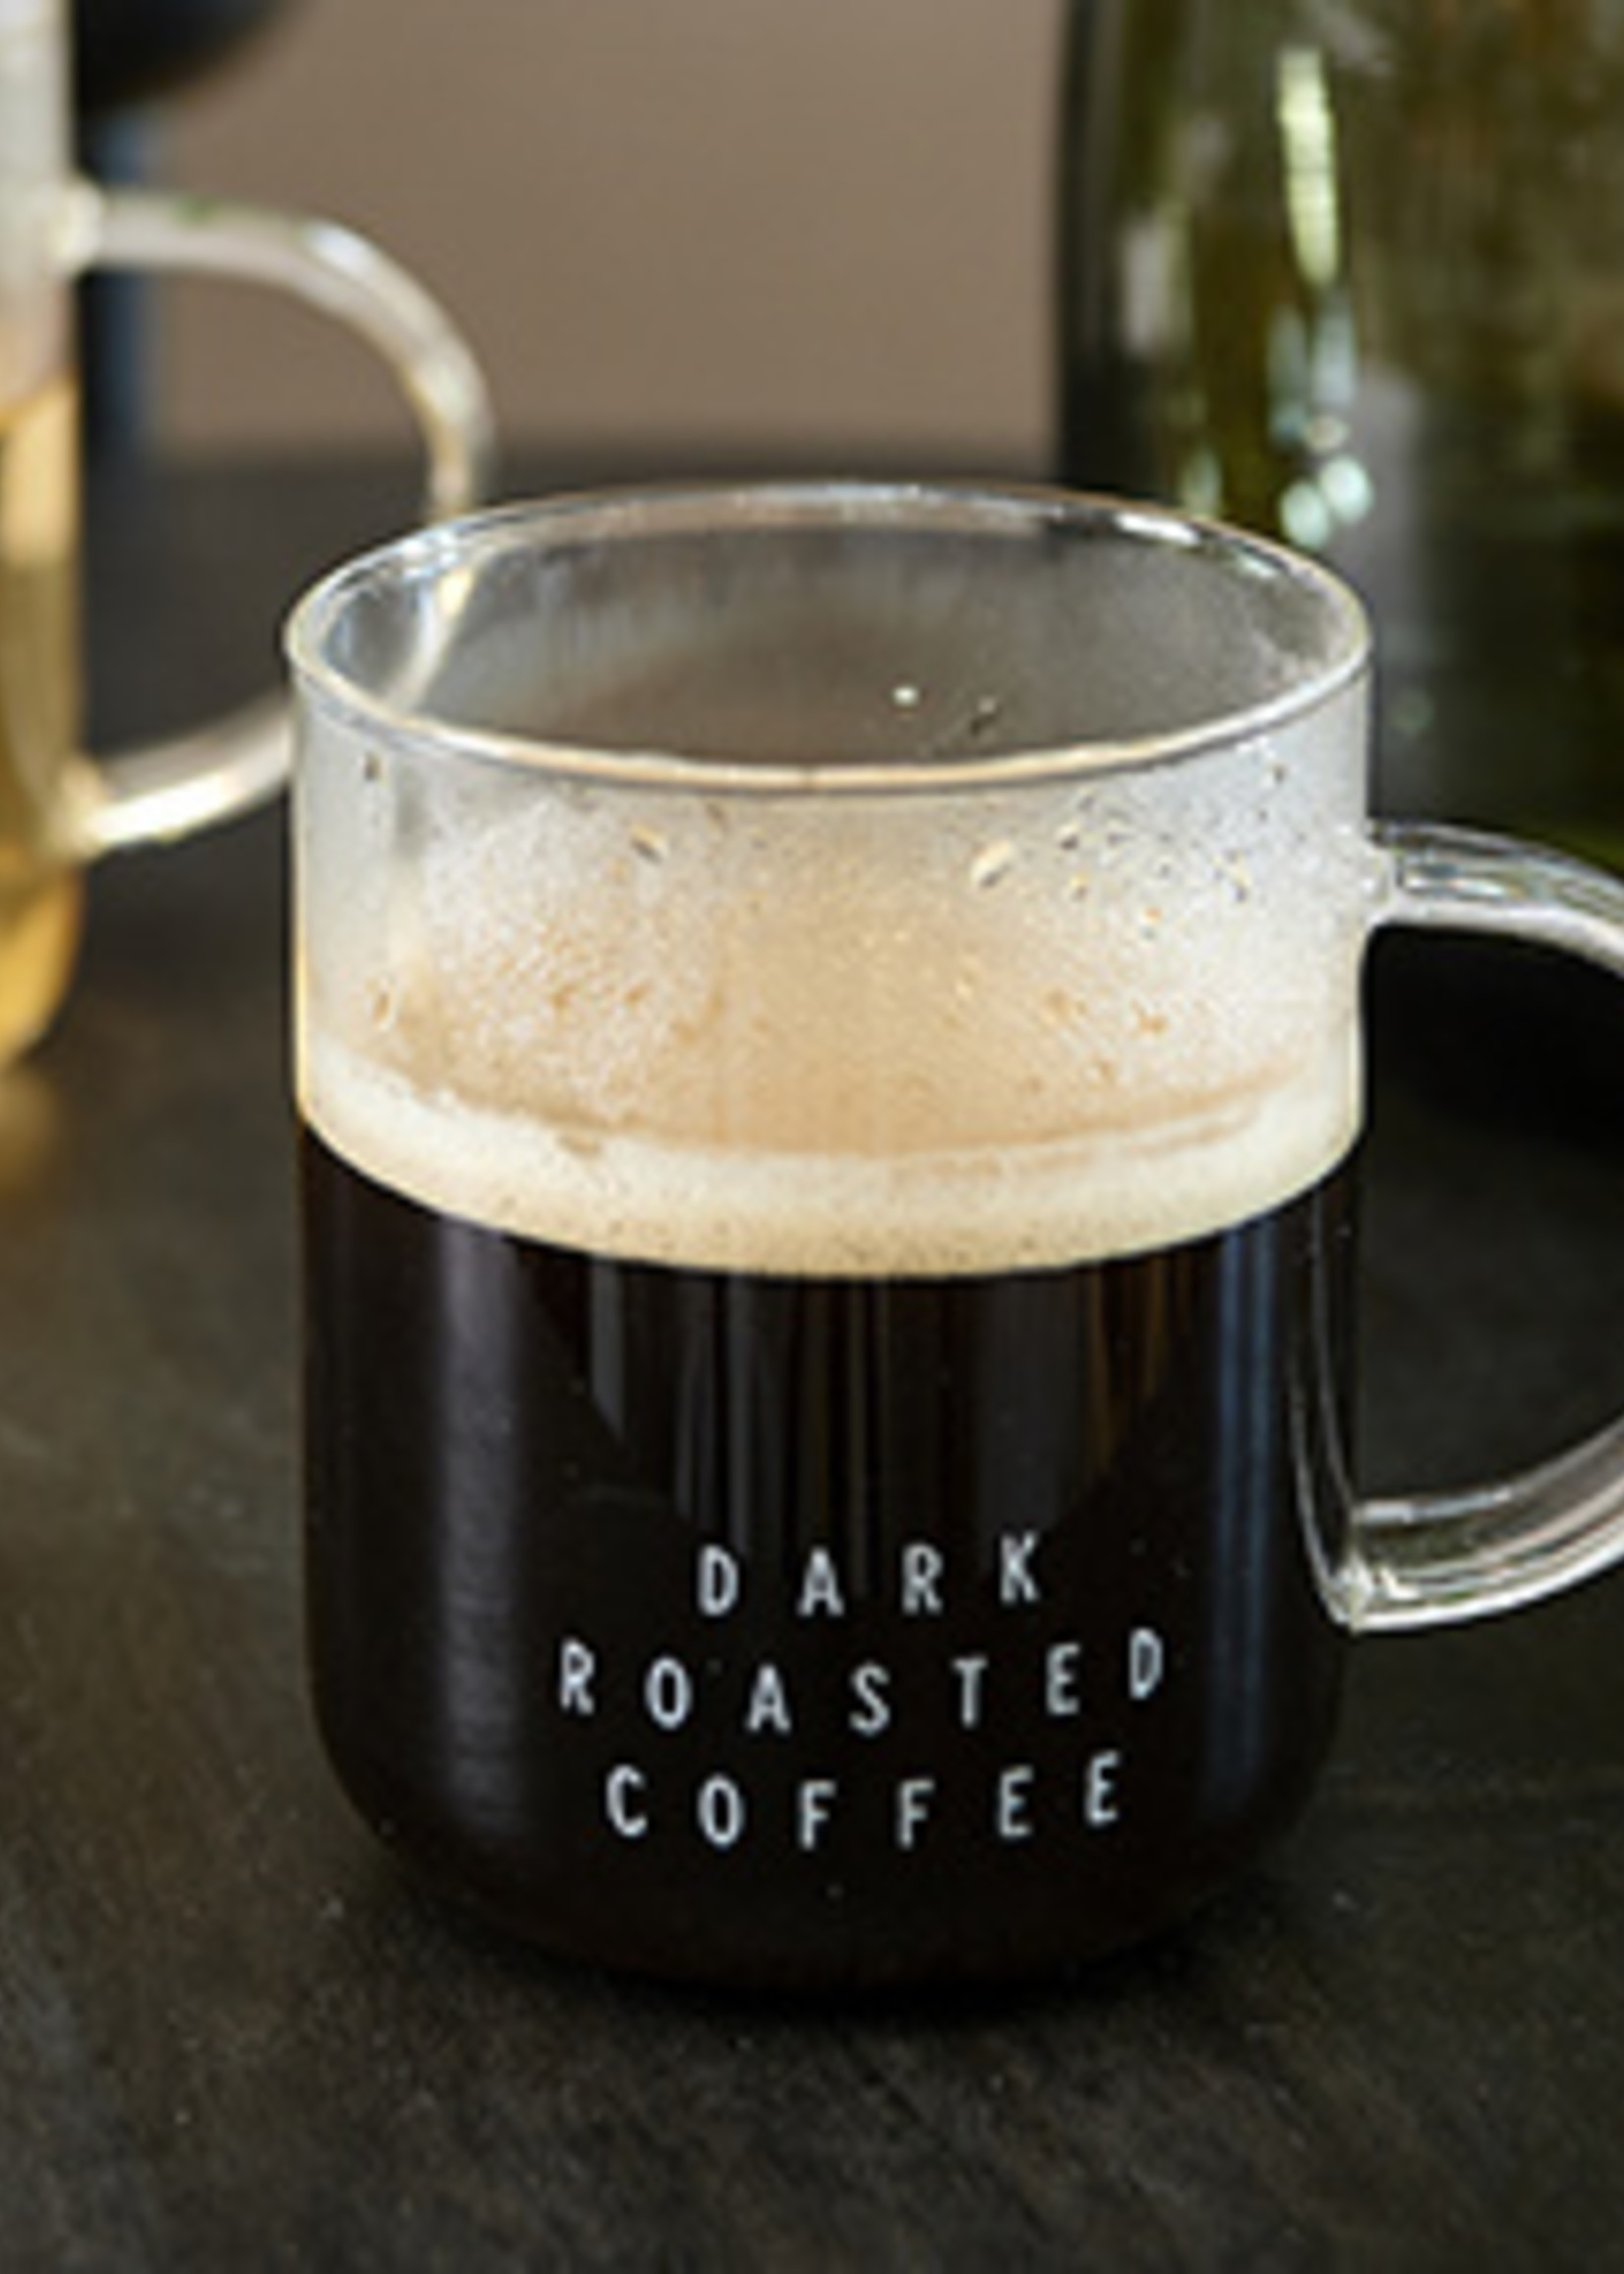 Riviera Maison Dark Roasted Coffee Glass